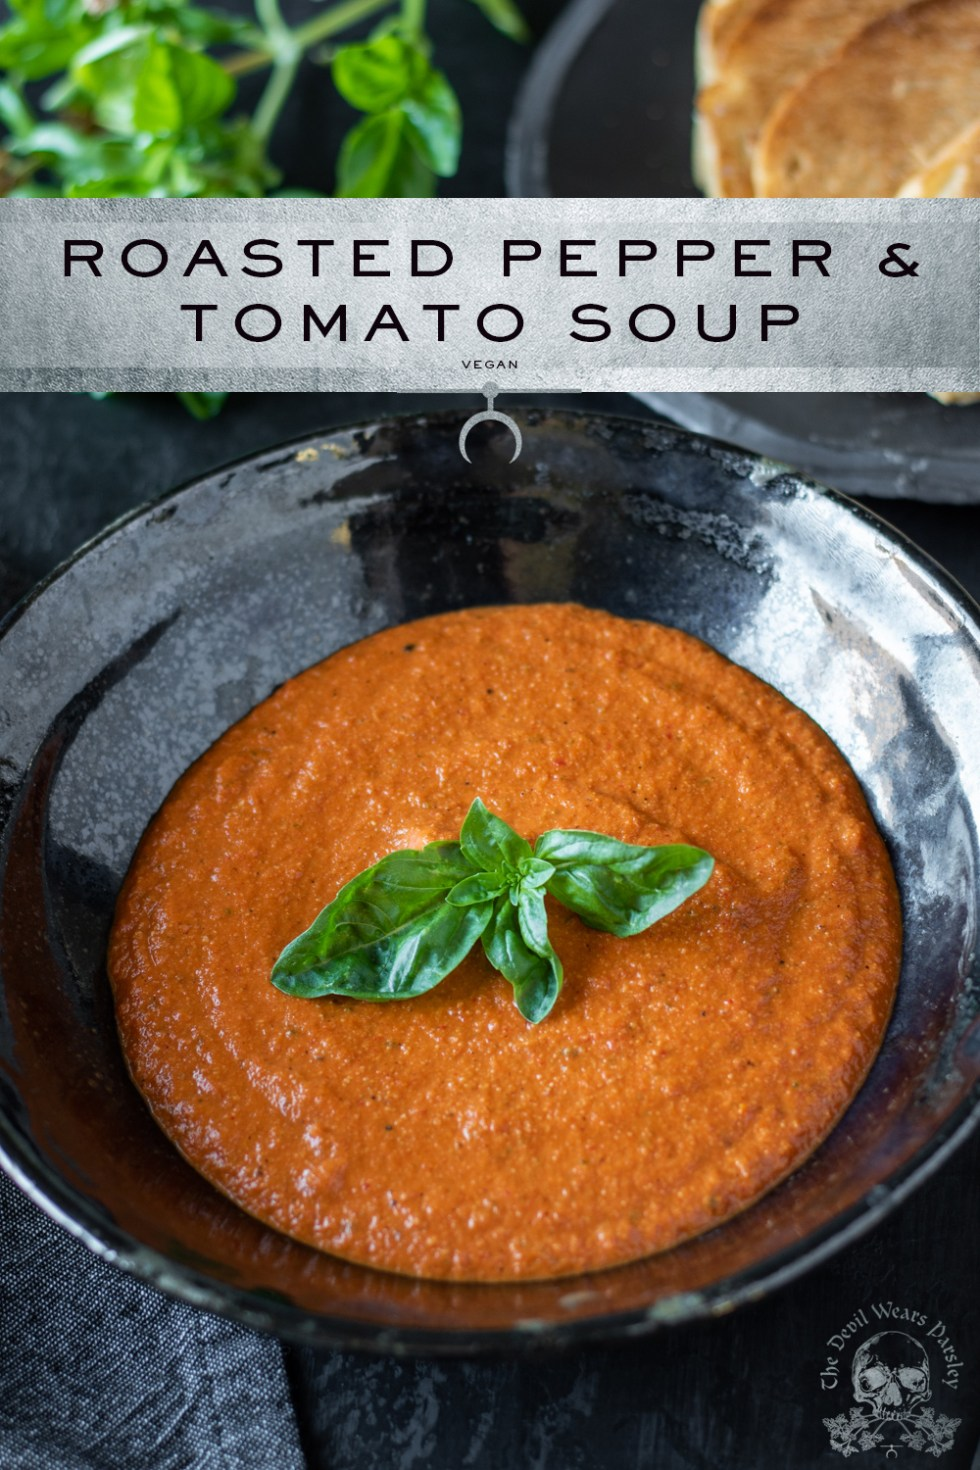 Fire roasted tomatoes and peppers are the bulk of this dish.  Pair this with a cashew cream, and we have a soup with tons of flavor and texture!